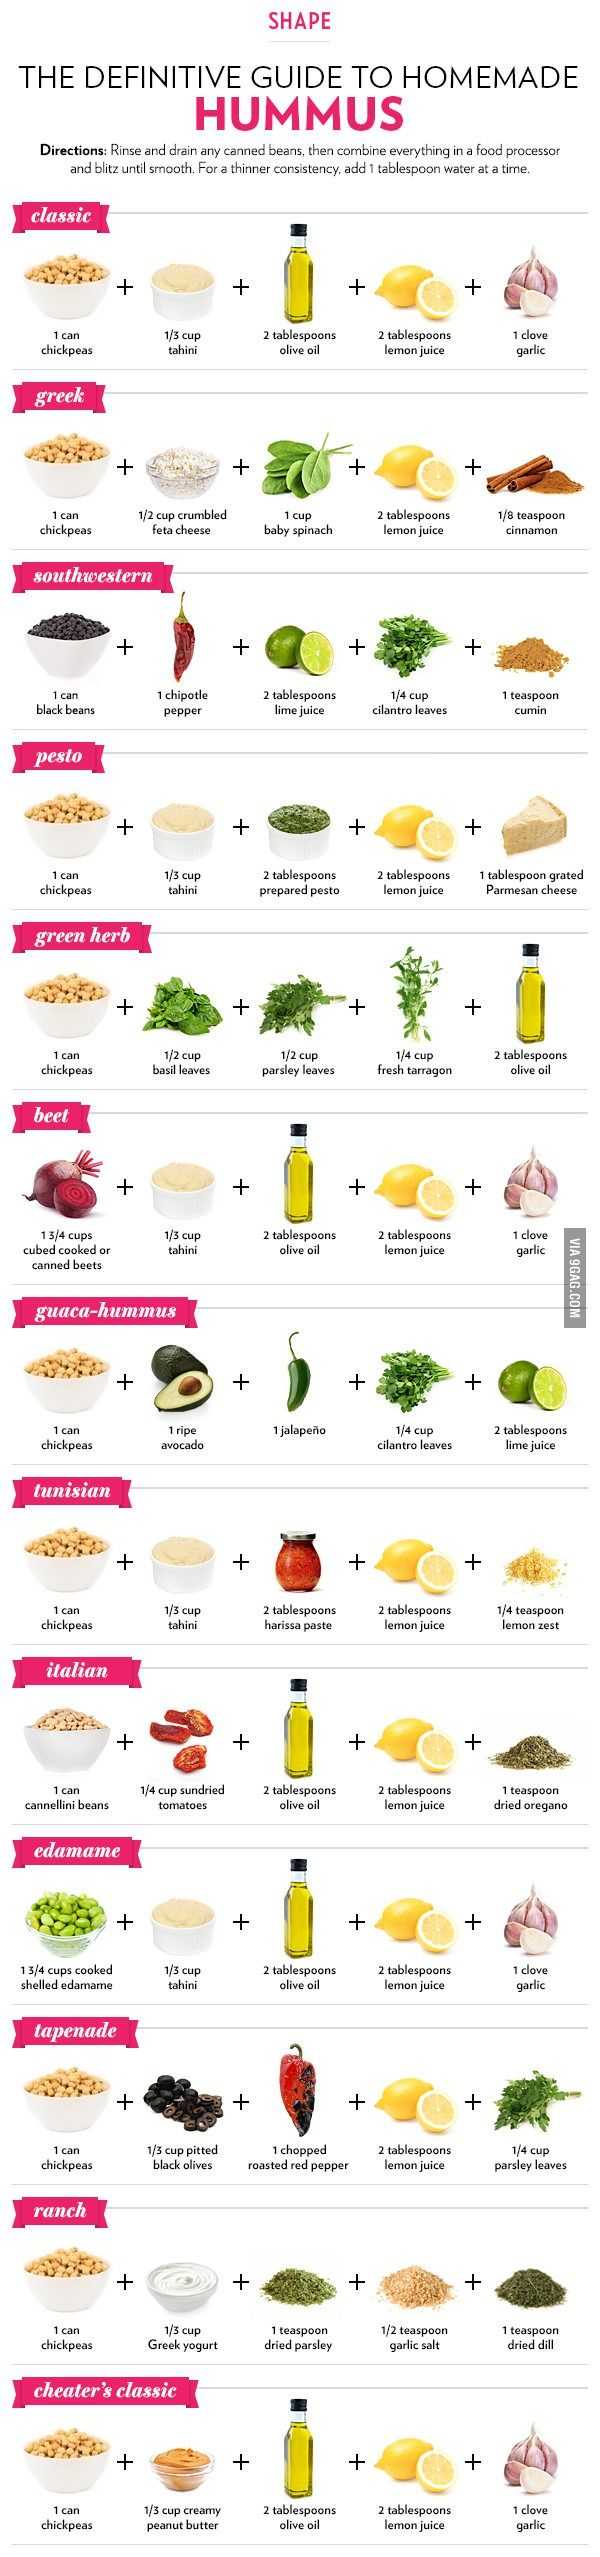 Guide to hummus